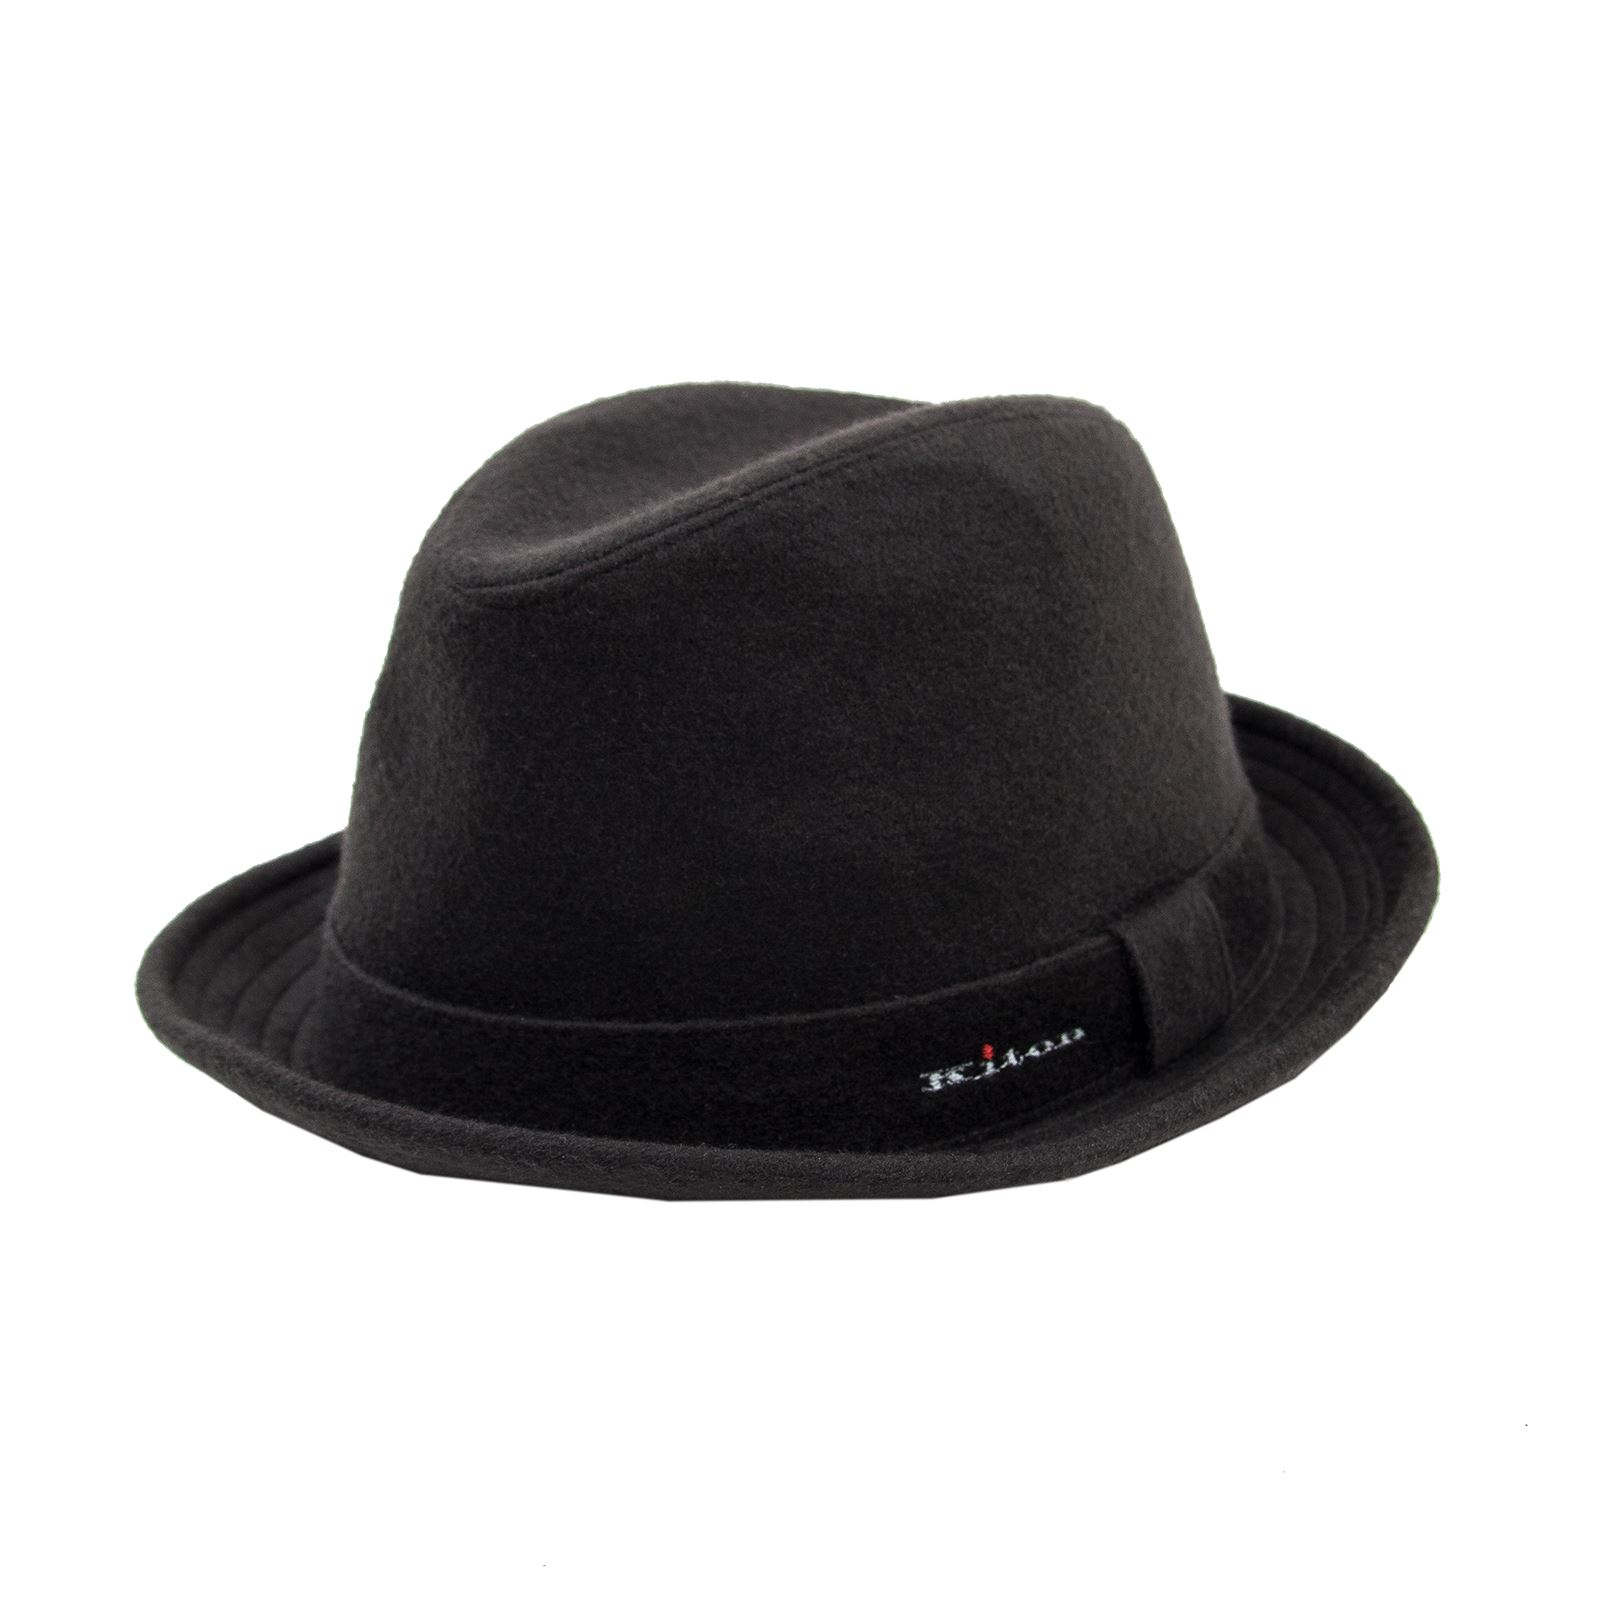 c10b3104 Details about NWOT Kiton Napoli Chocolate Brown Cashmere Silk Lined Fedora  Hat 59 EU/ 7 3/8 US